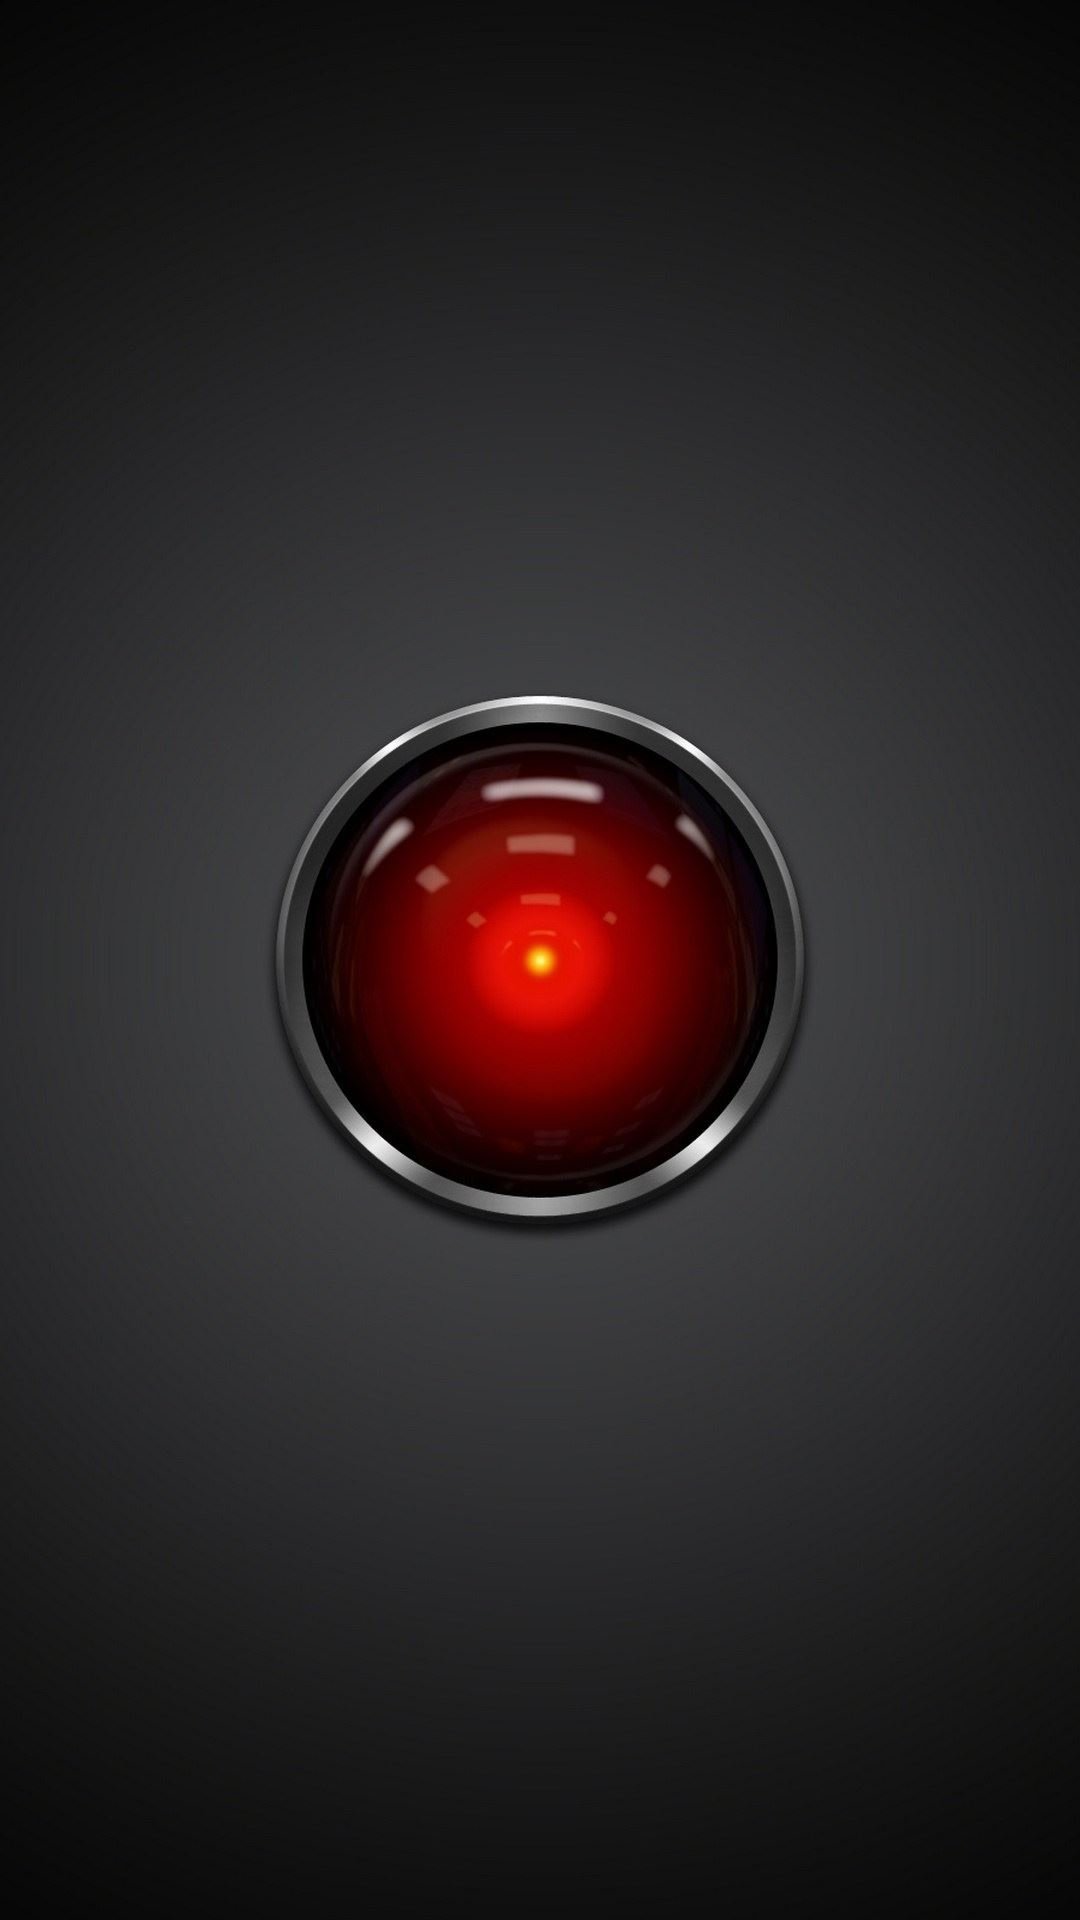 hal 9000 android wallpaper